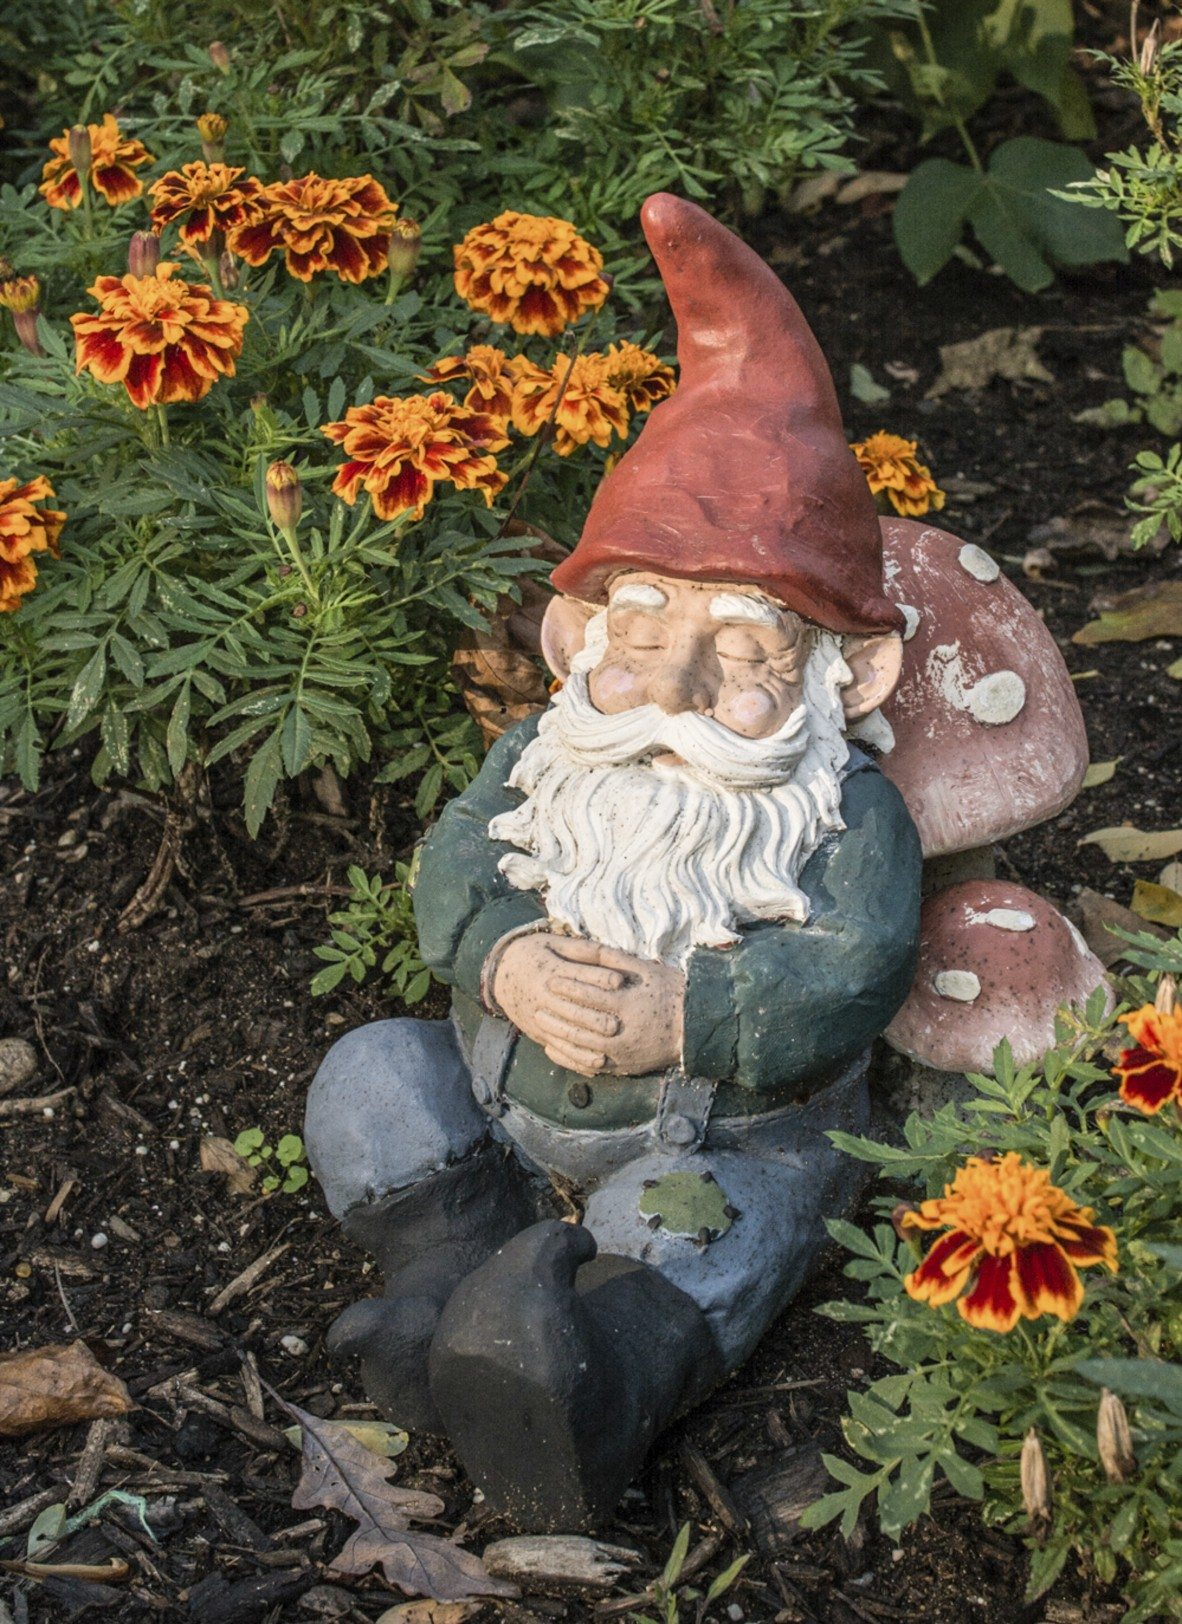 Gnome Garden: Learn About The History Of